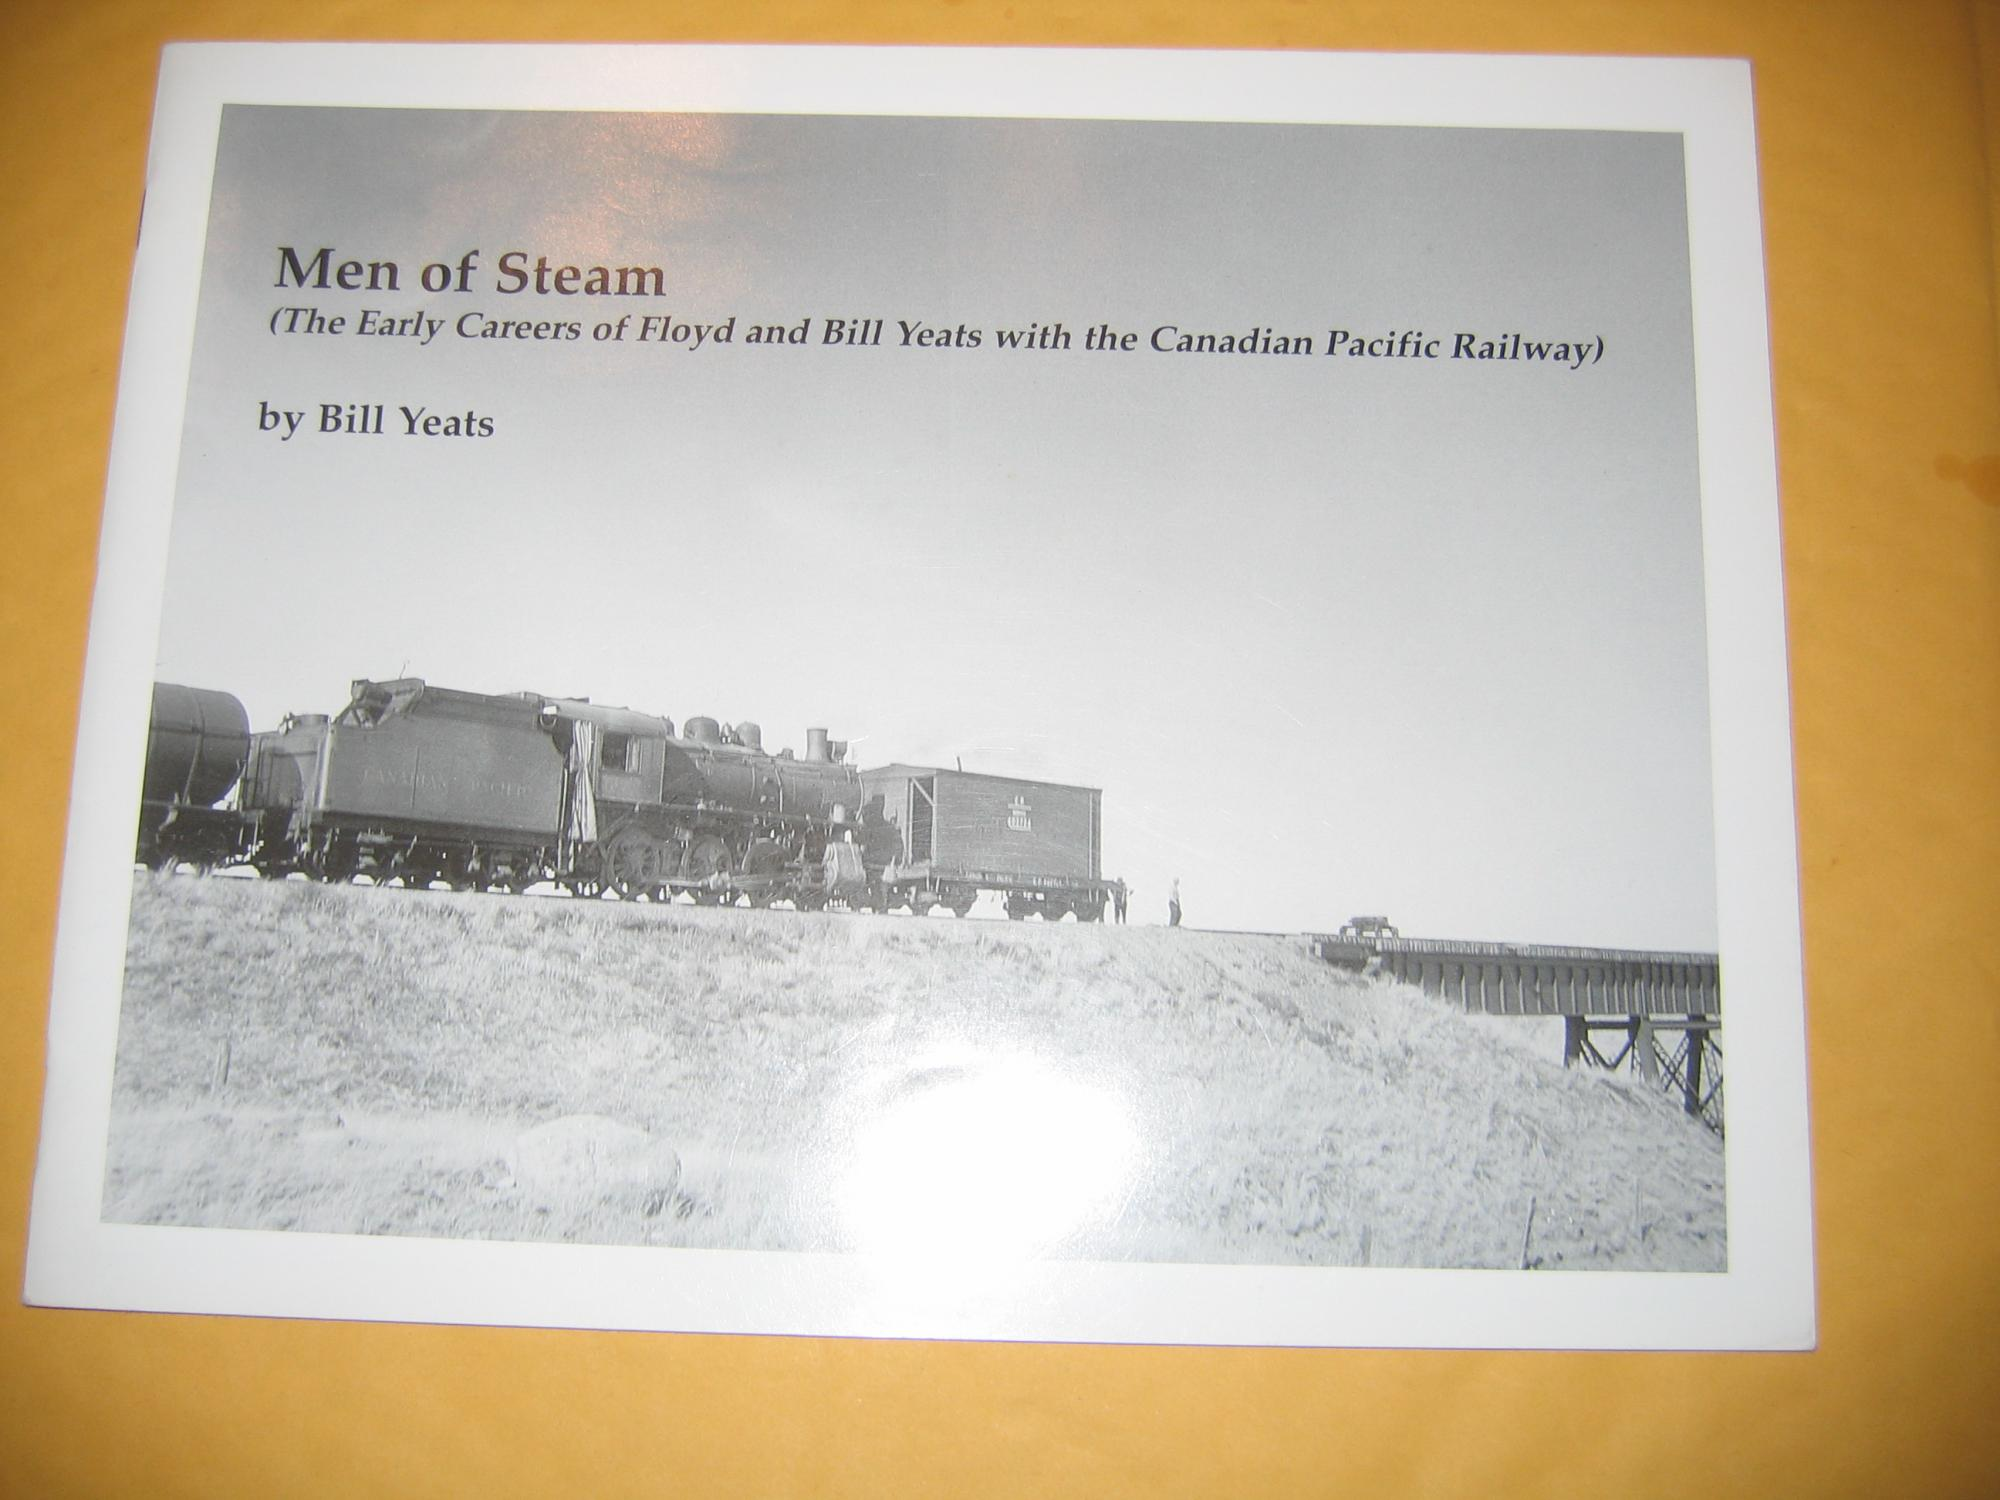 Men of Steam (The Early Careers of Floyd and